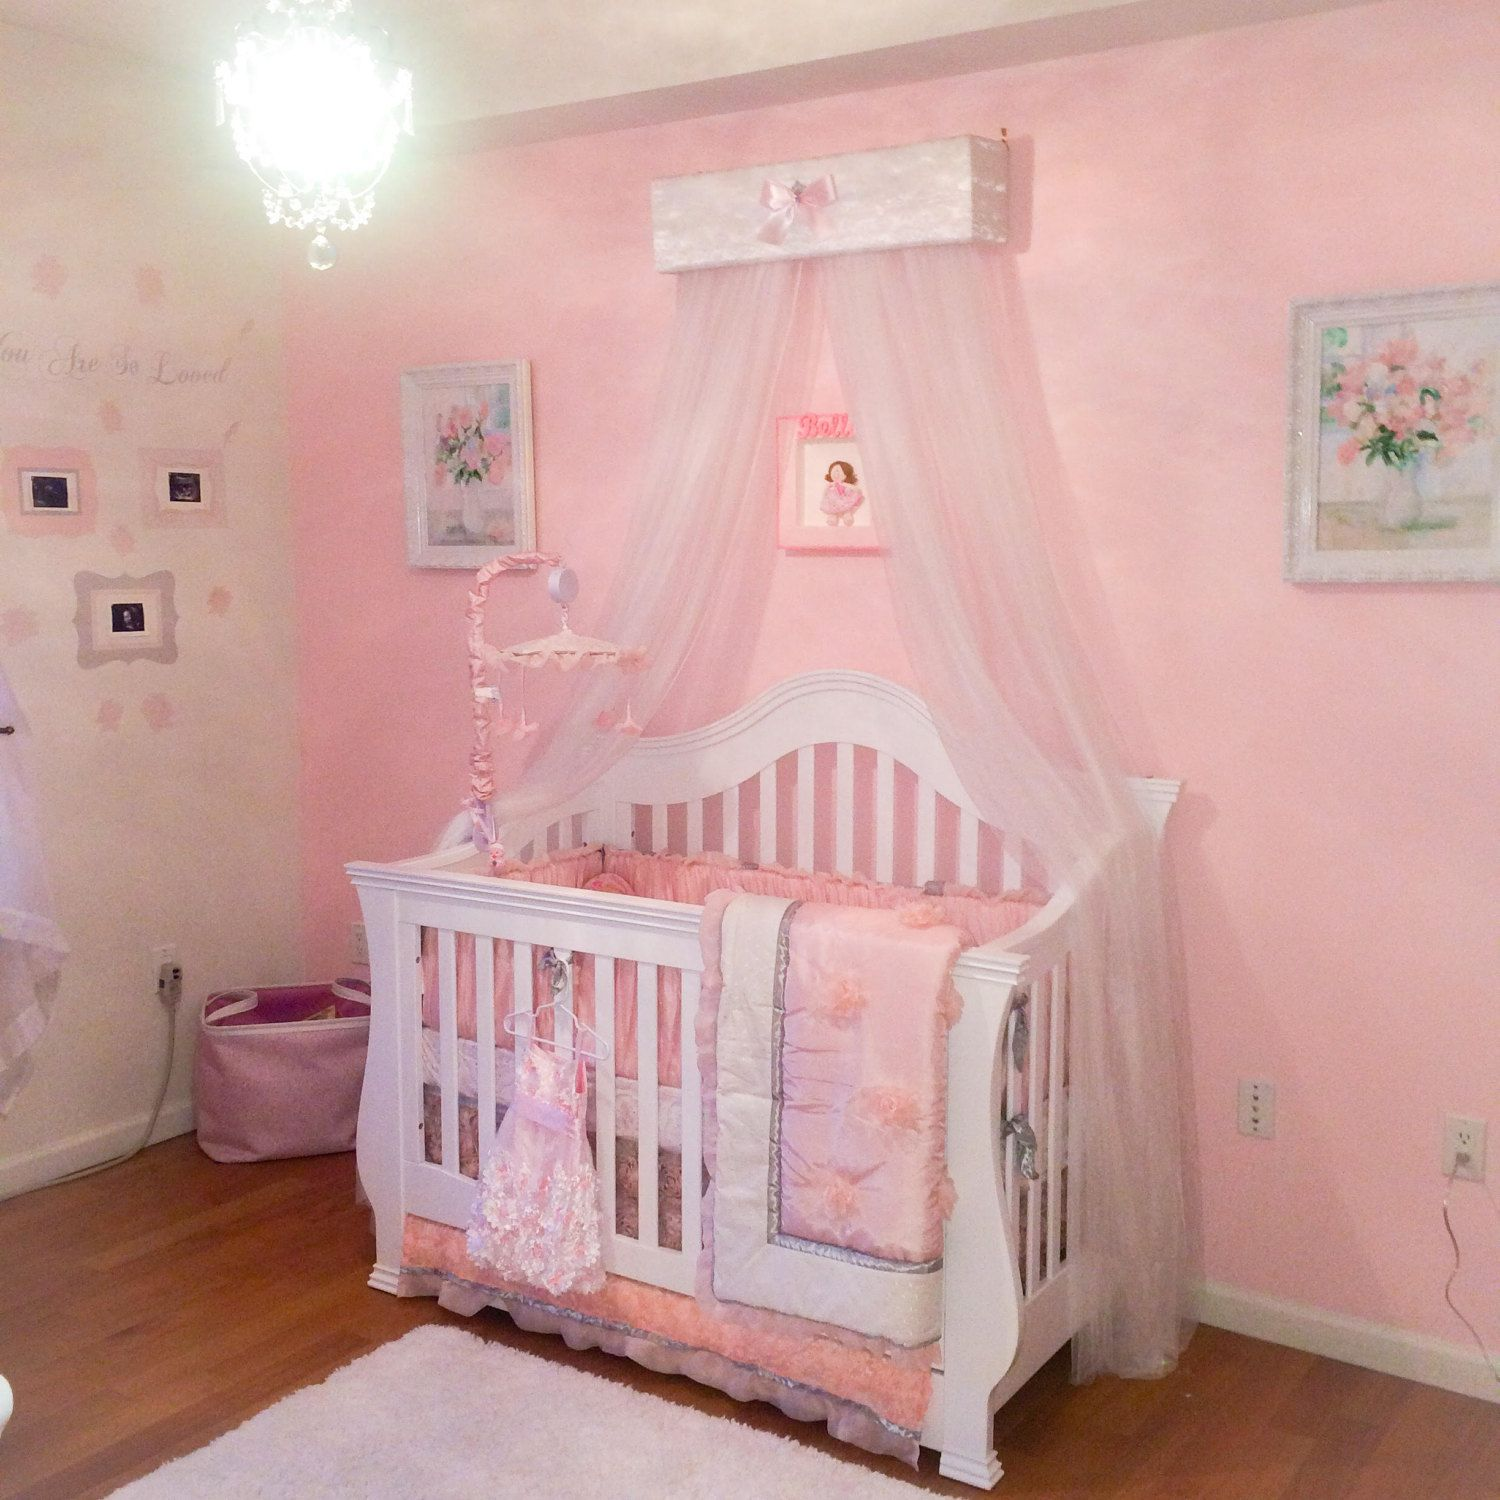 Princess Bed Canopy Girl CrOwN Pelmet Upholstered Awning White Light Pink  Bedroom Nursery Crib FrEe ShiPPinG